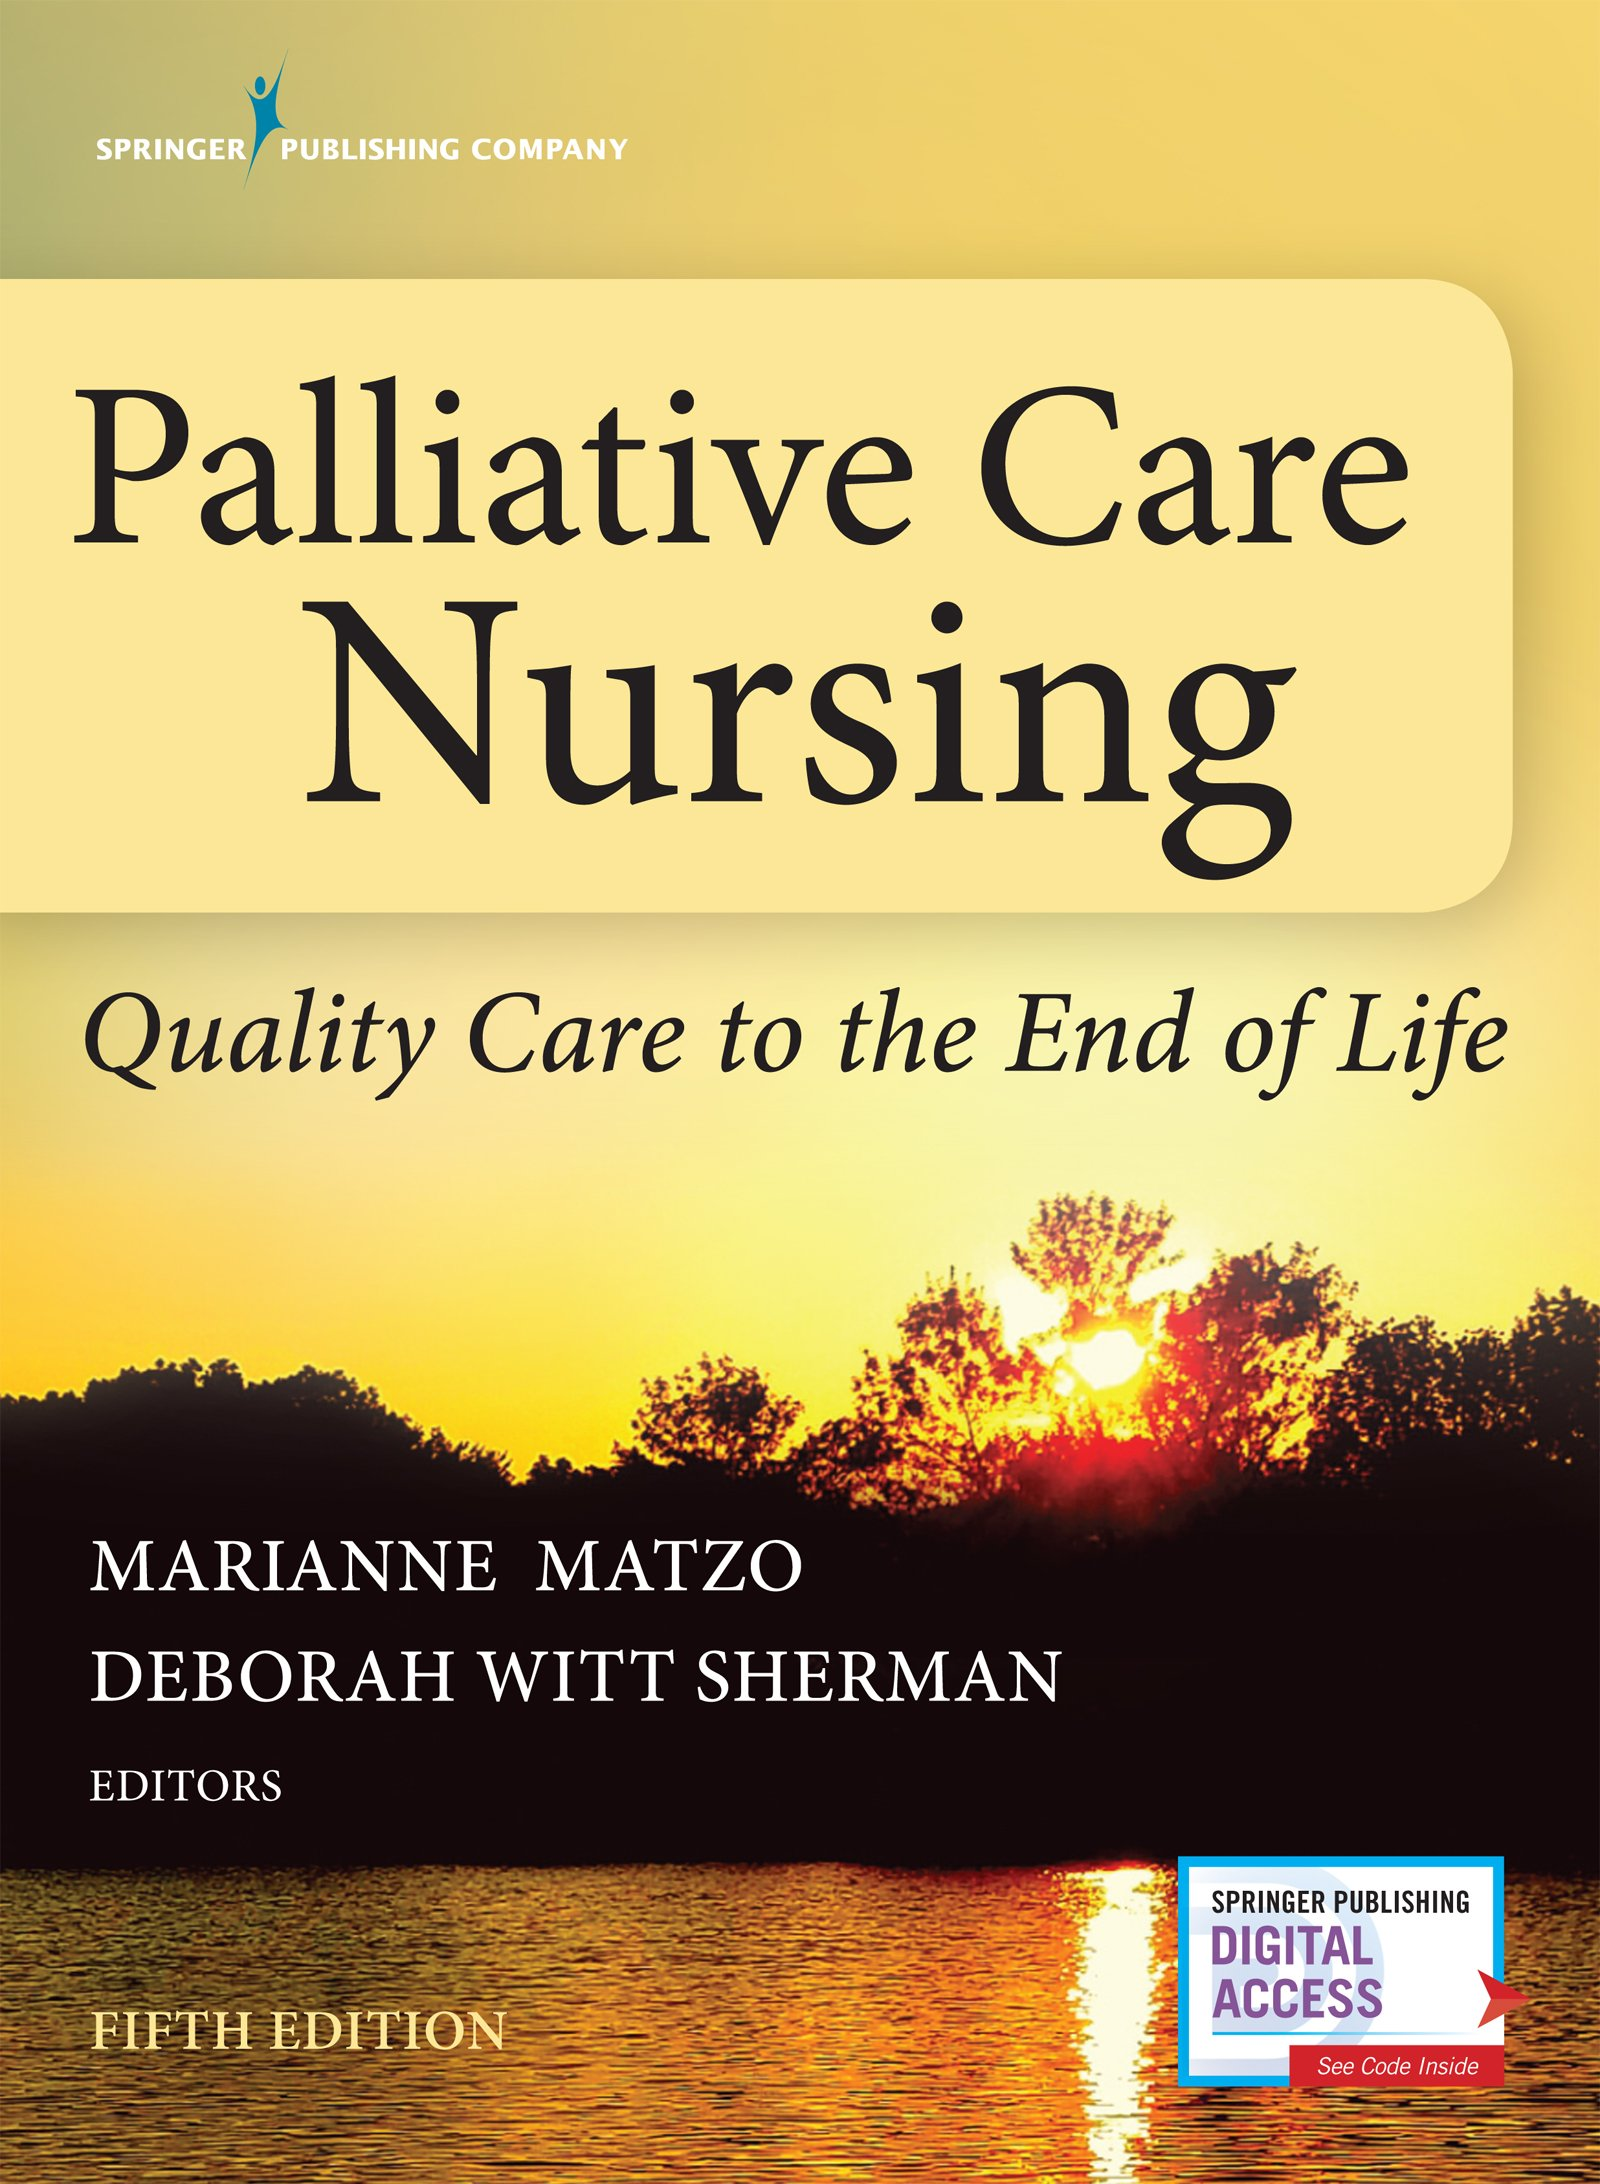 Palliative Care Nursing 5th Edition Pdf Free Download